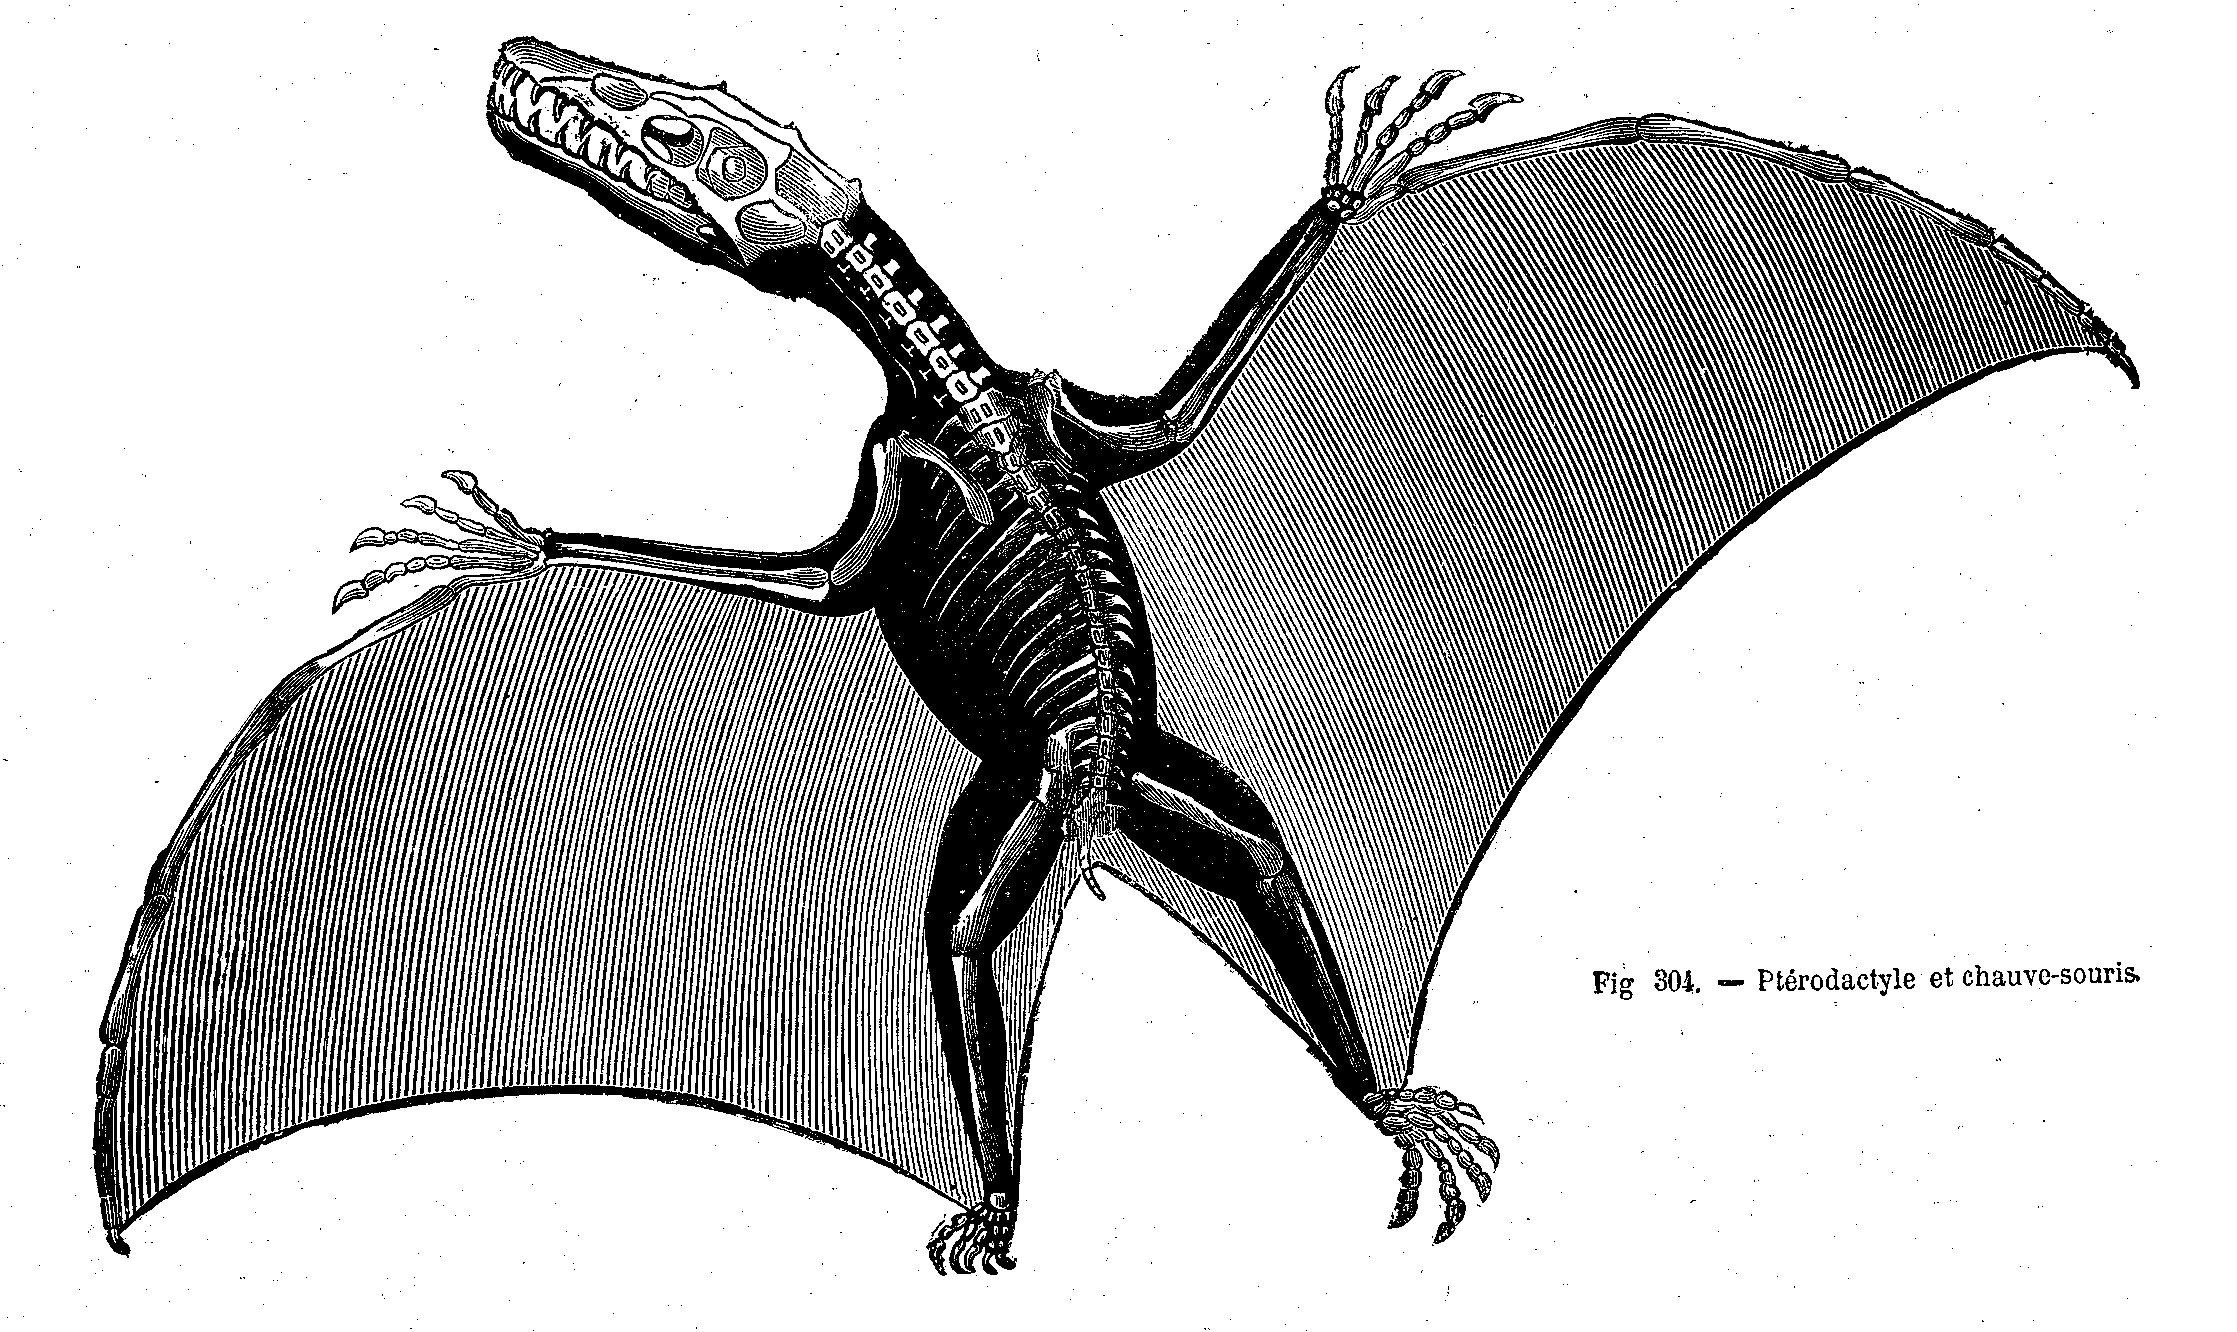 pterodactyl pictures pterodactyl extinct flying reptile photograph by science pterodactyl pictures